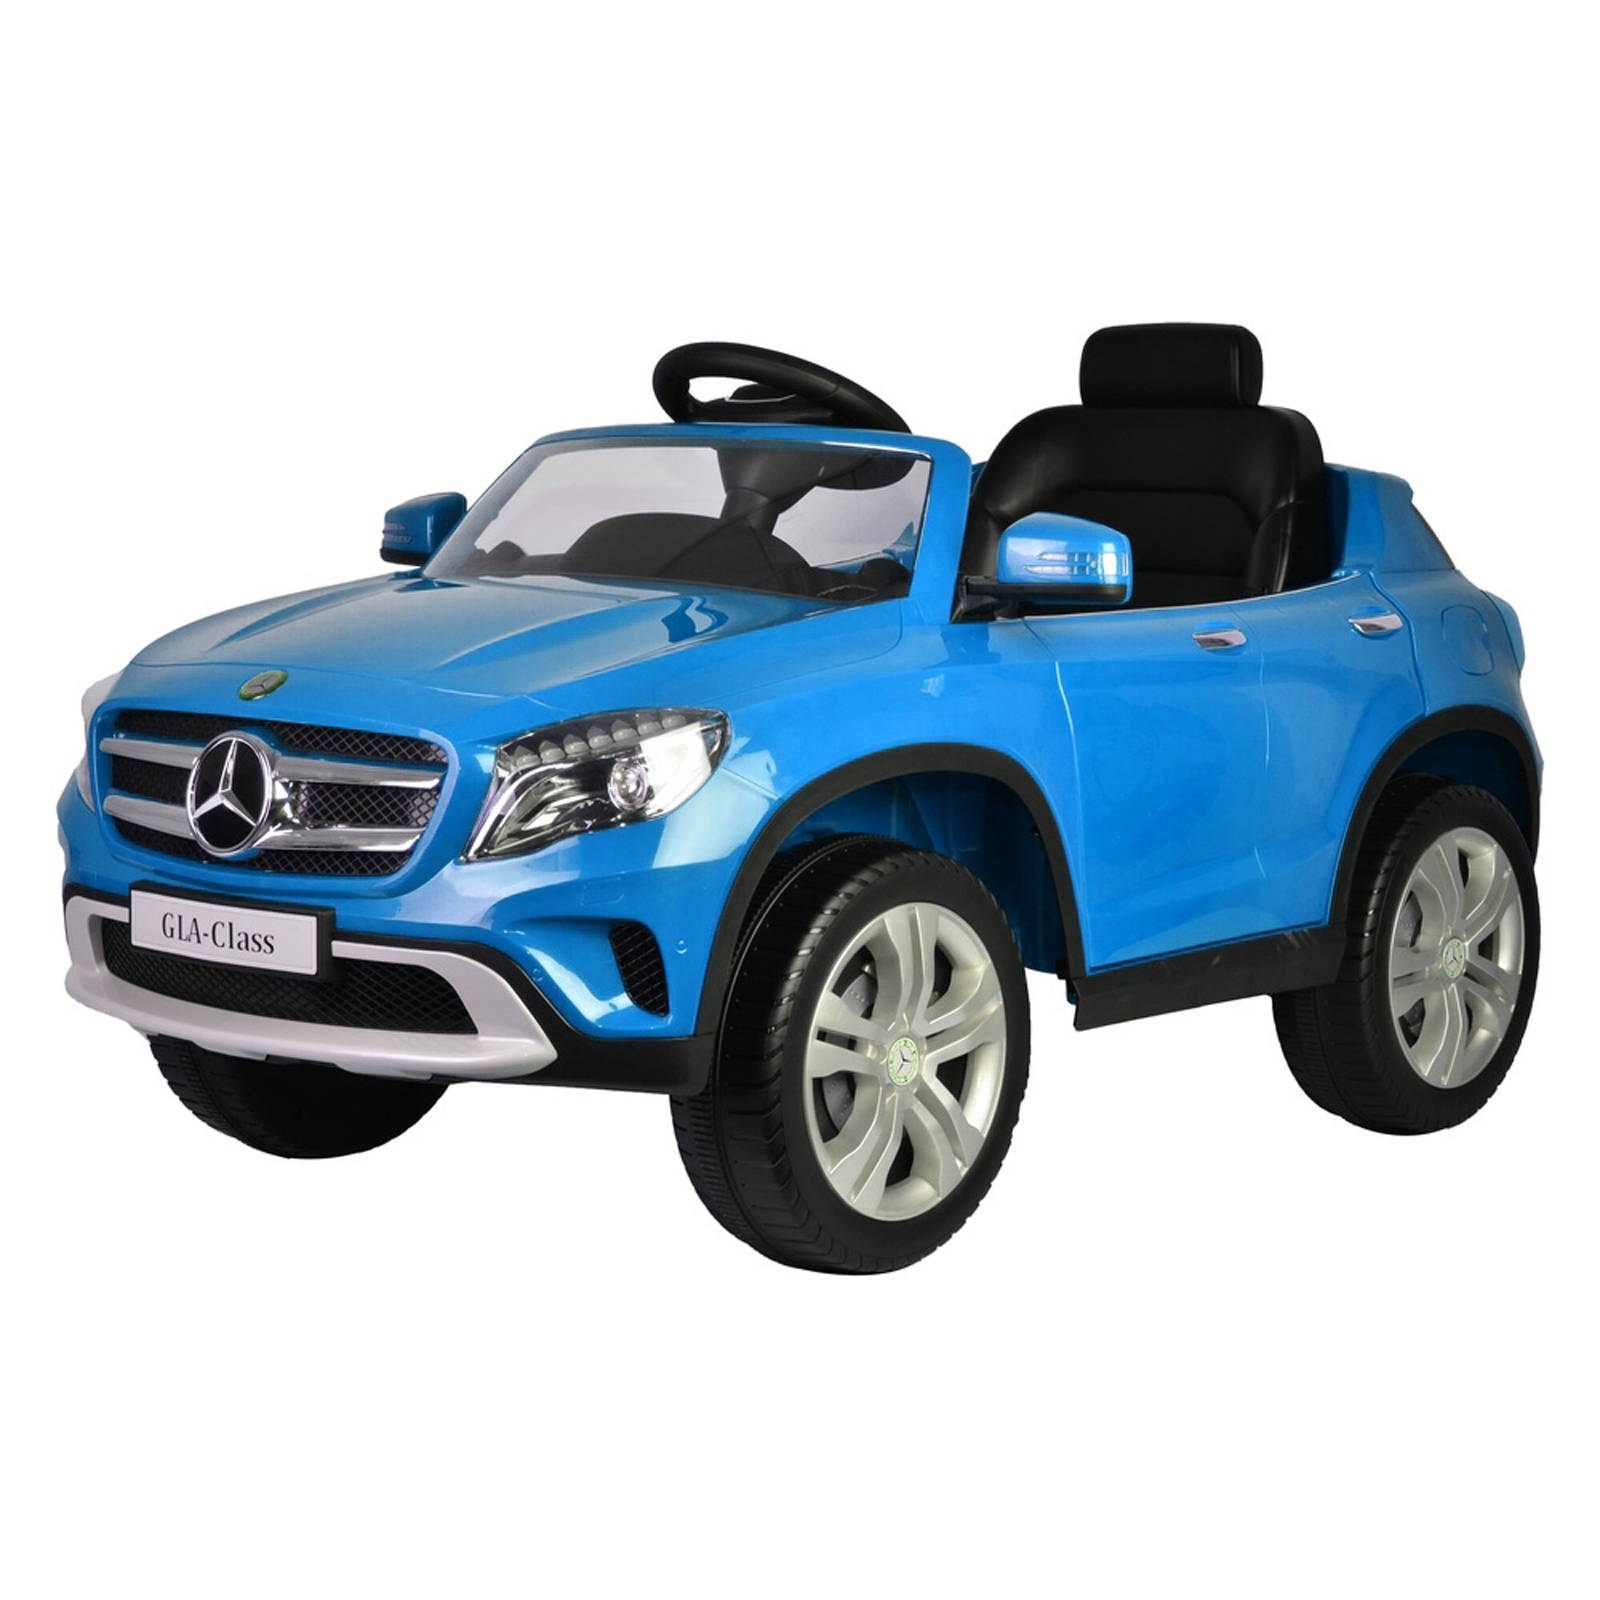 Mercedes Benz GLA 12V Battery Powered Licensed Kids Ride On Car - Blue